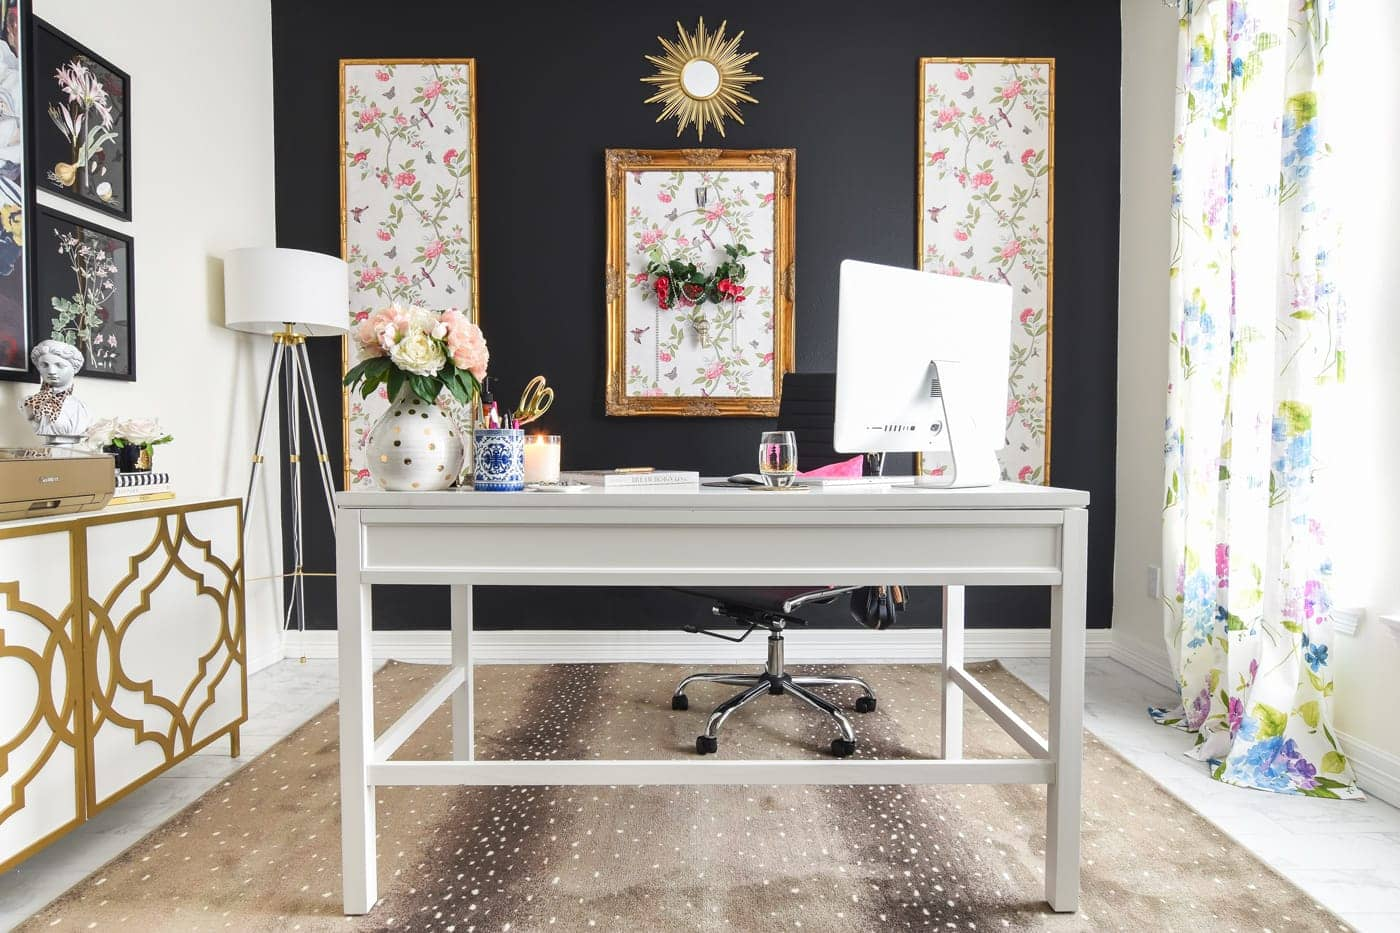 Home Office Decor: Room Reveal